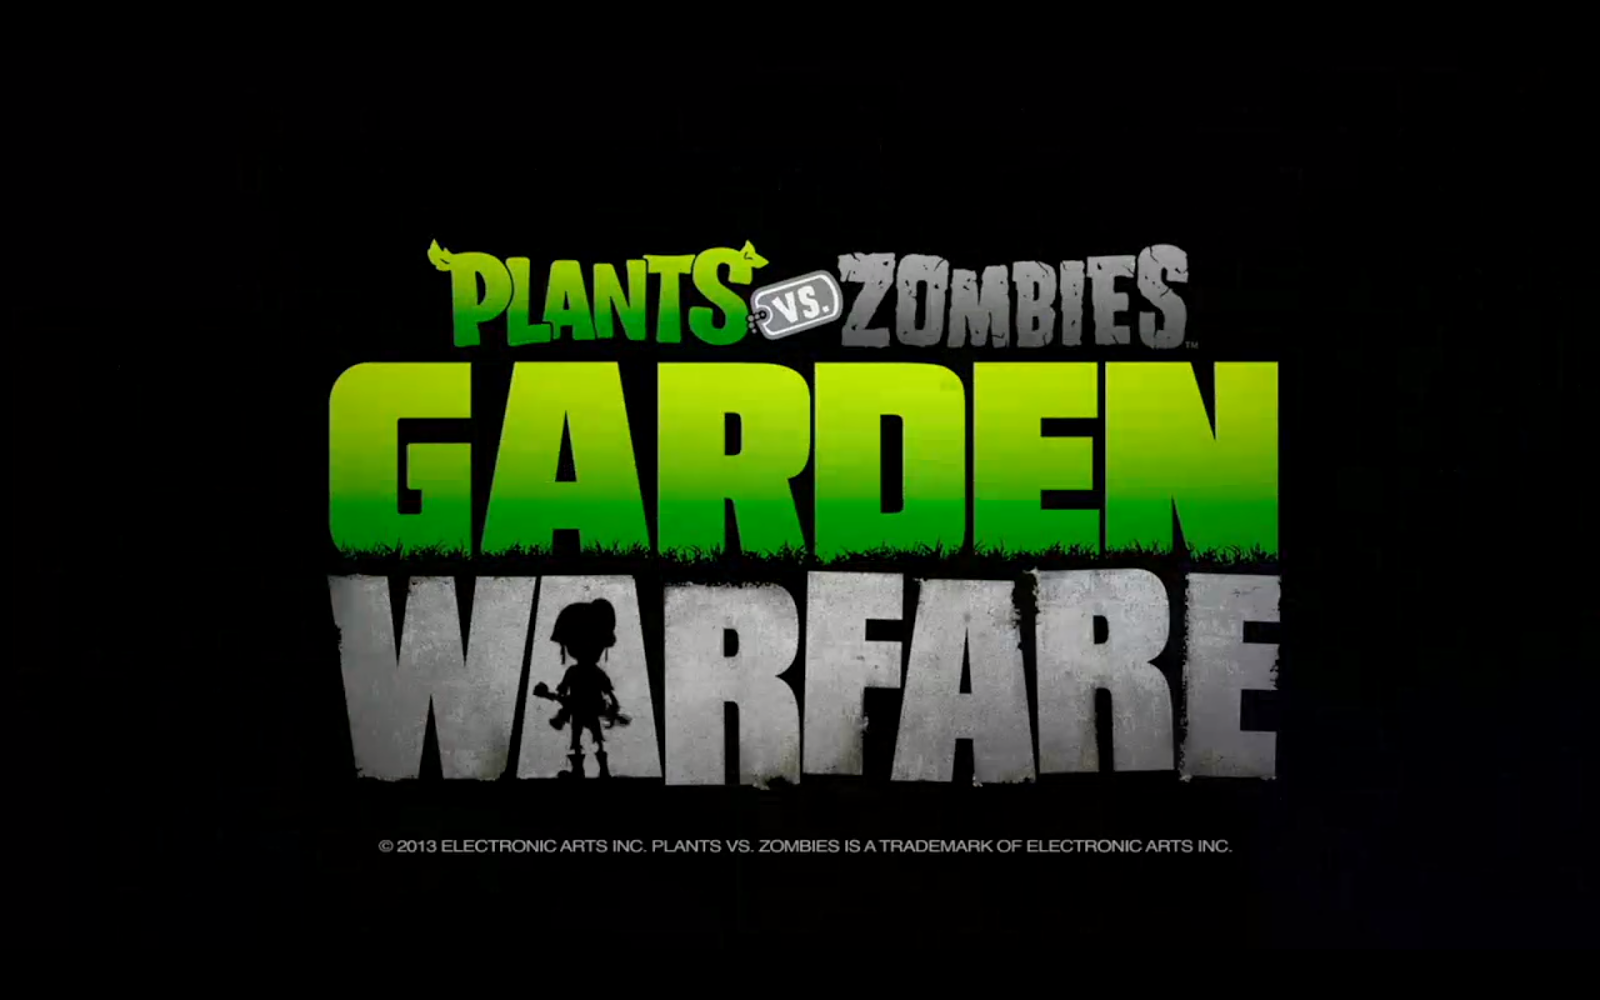 <span>Plants <b class=sec>vs</b>. <b class=sec>Zombies</b>: <b class=sec>Garden</b> <b class=sec>Warfare</b> - The Engineer - YouTube</span>